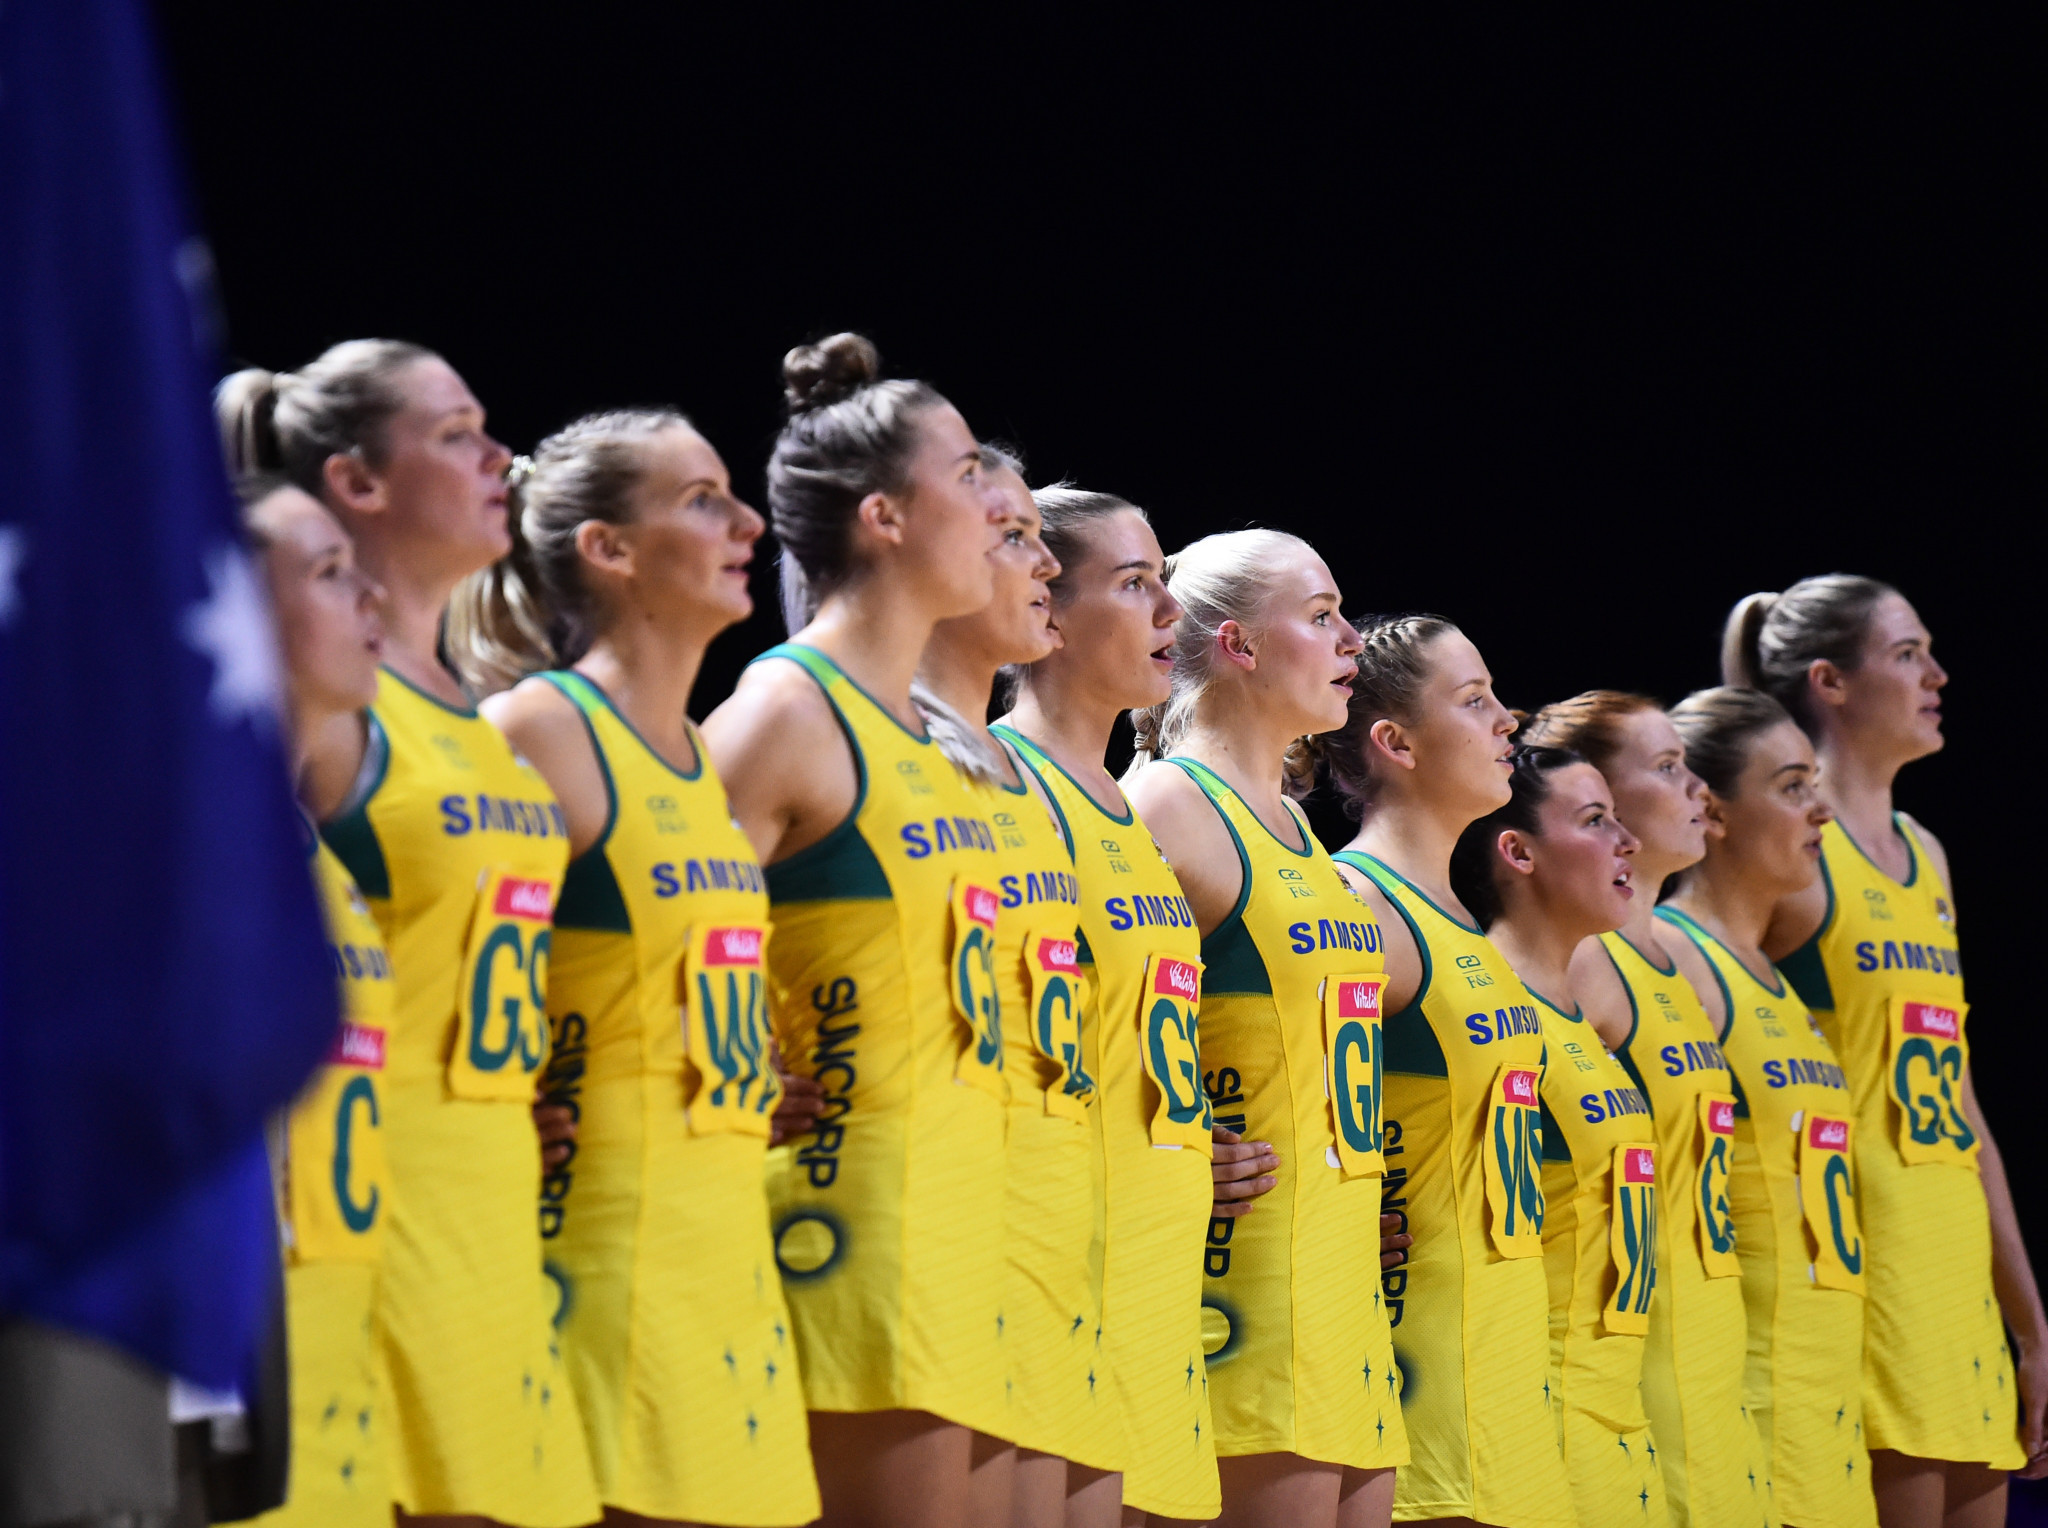 Australia retain top spot as final netball world rankings of 2019 published